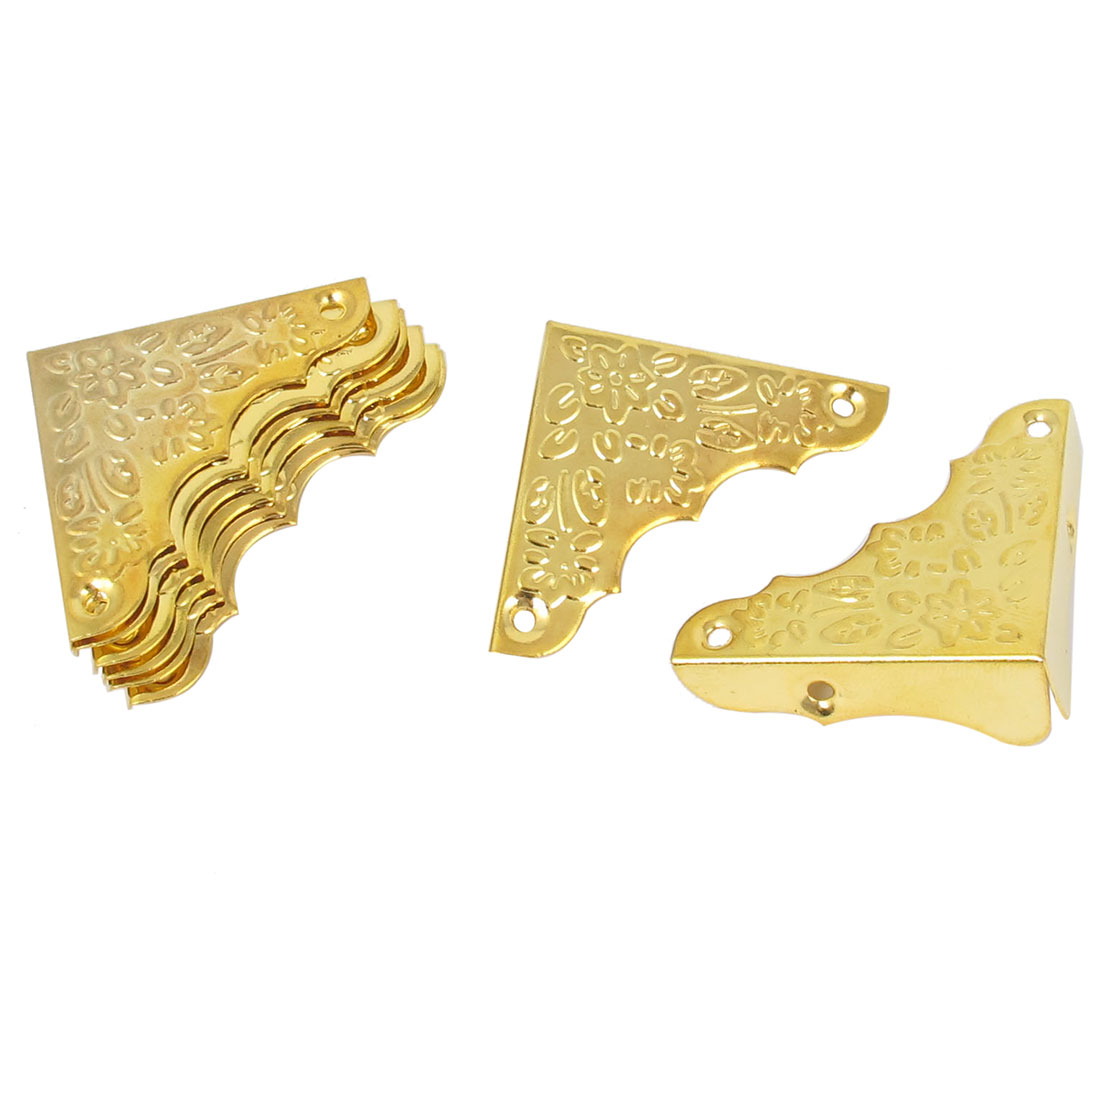 37mmx37mmx12mm Box Case Carved Corner Angle Brackets Protector Guard Gold Tone 8pcs